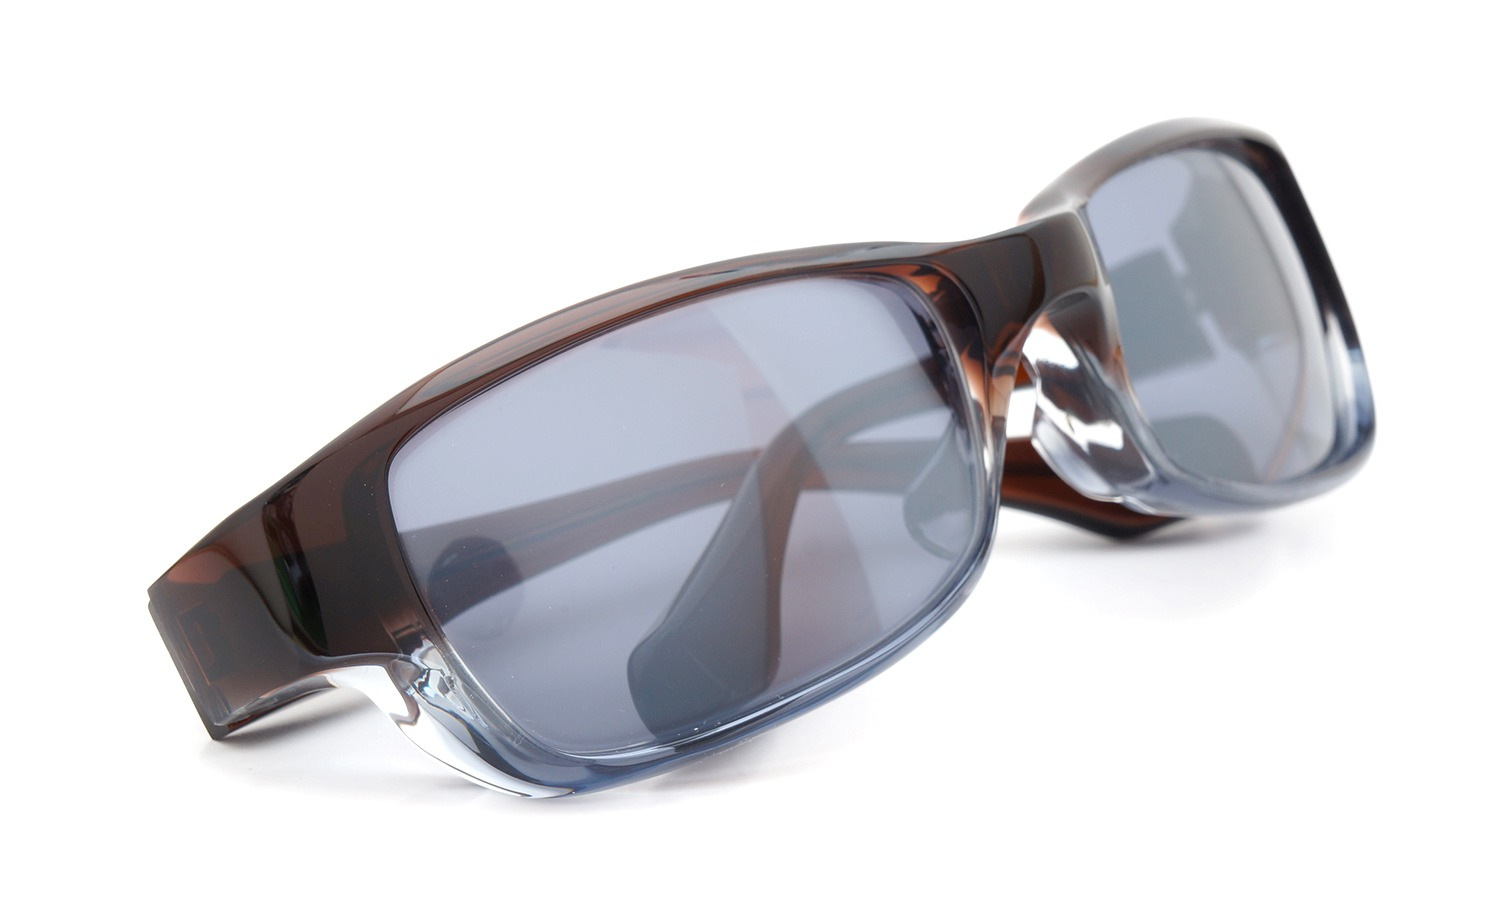 FACTORY900 ×PonMegane 10周年記念オリジナル サングラス F-002 Col.Brown-Clear-Grey Lense.Silver-Matte-Mirror 11